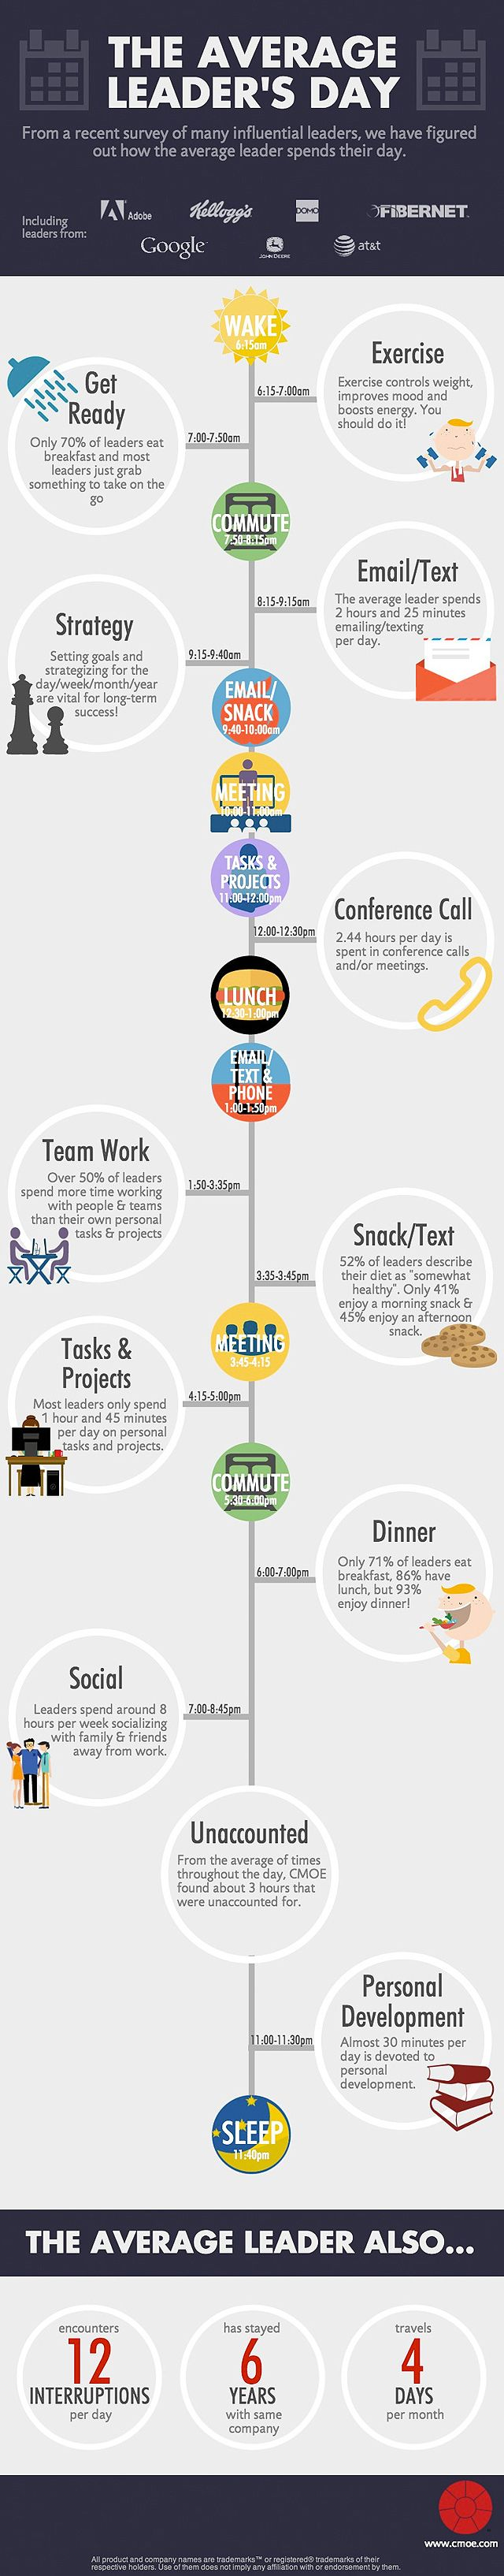 How does a CEO spend his day? Infographic